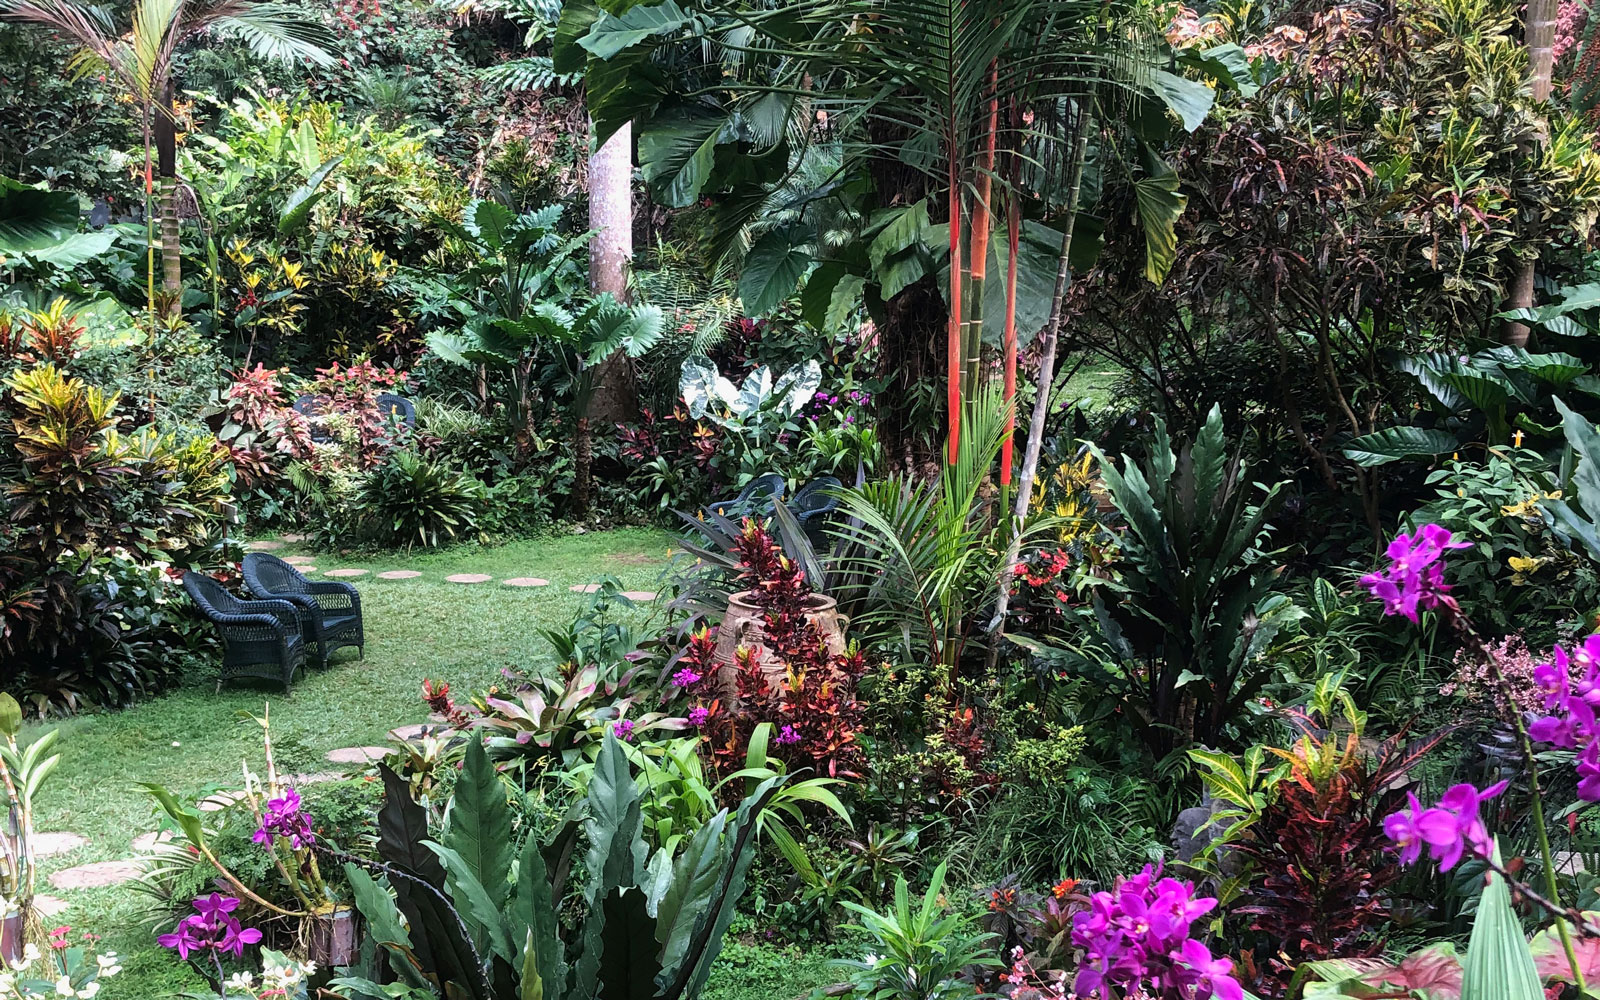 The Best Garden in the Caribbean Is Hiding in Someone's Backyard